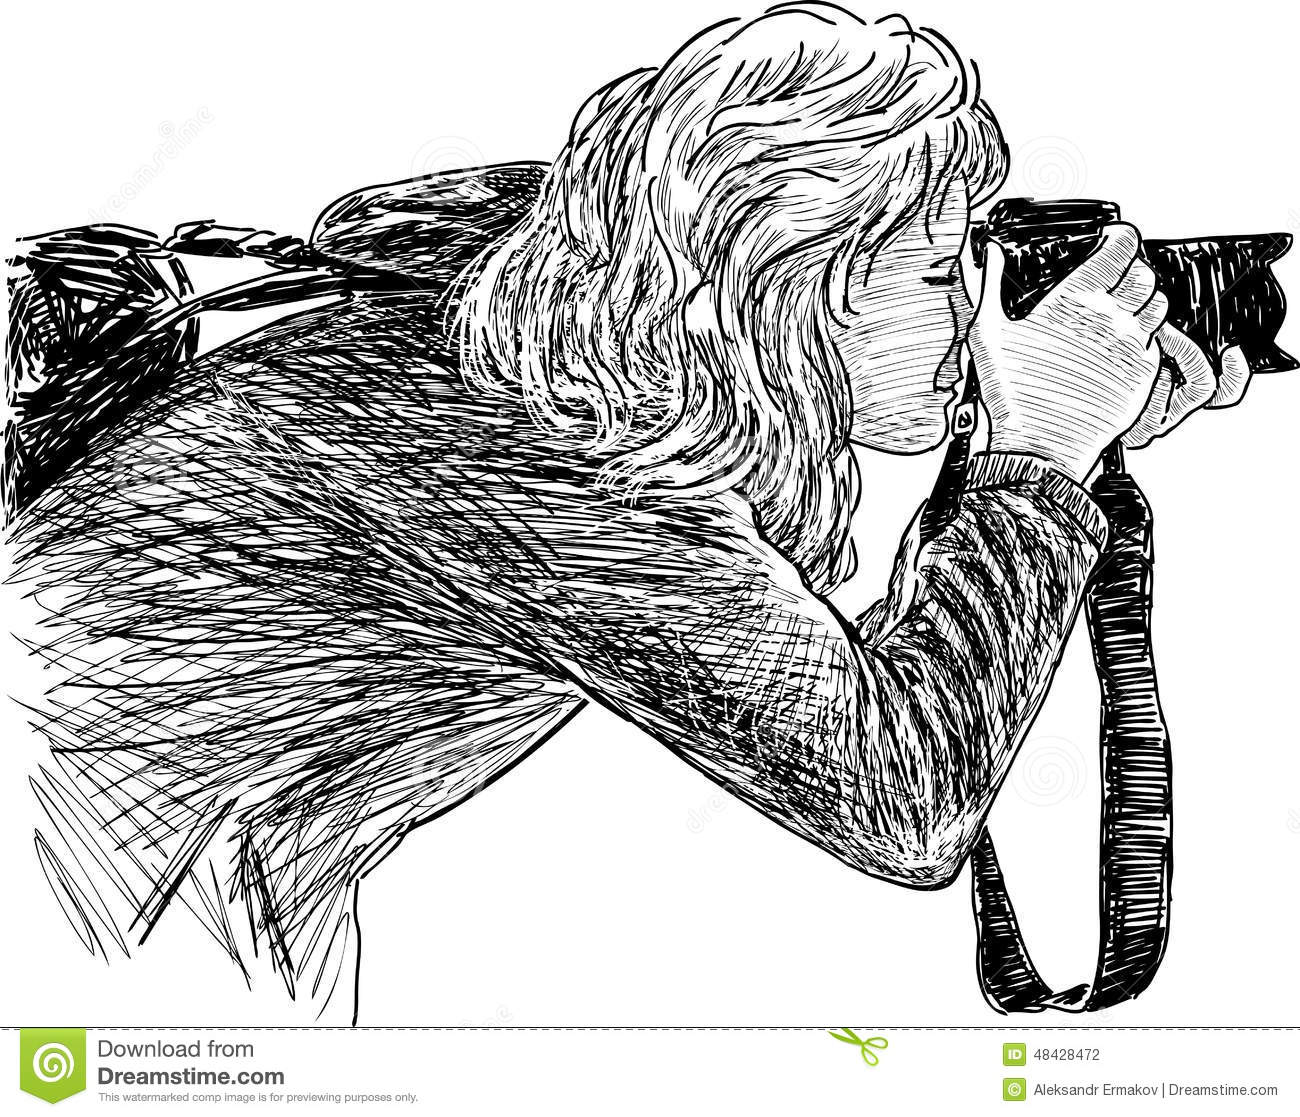 Sketch of a shooting girl stock vector. Illustration of ...  Sketch of a sho...